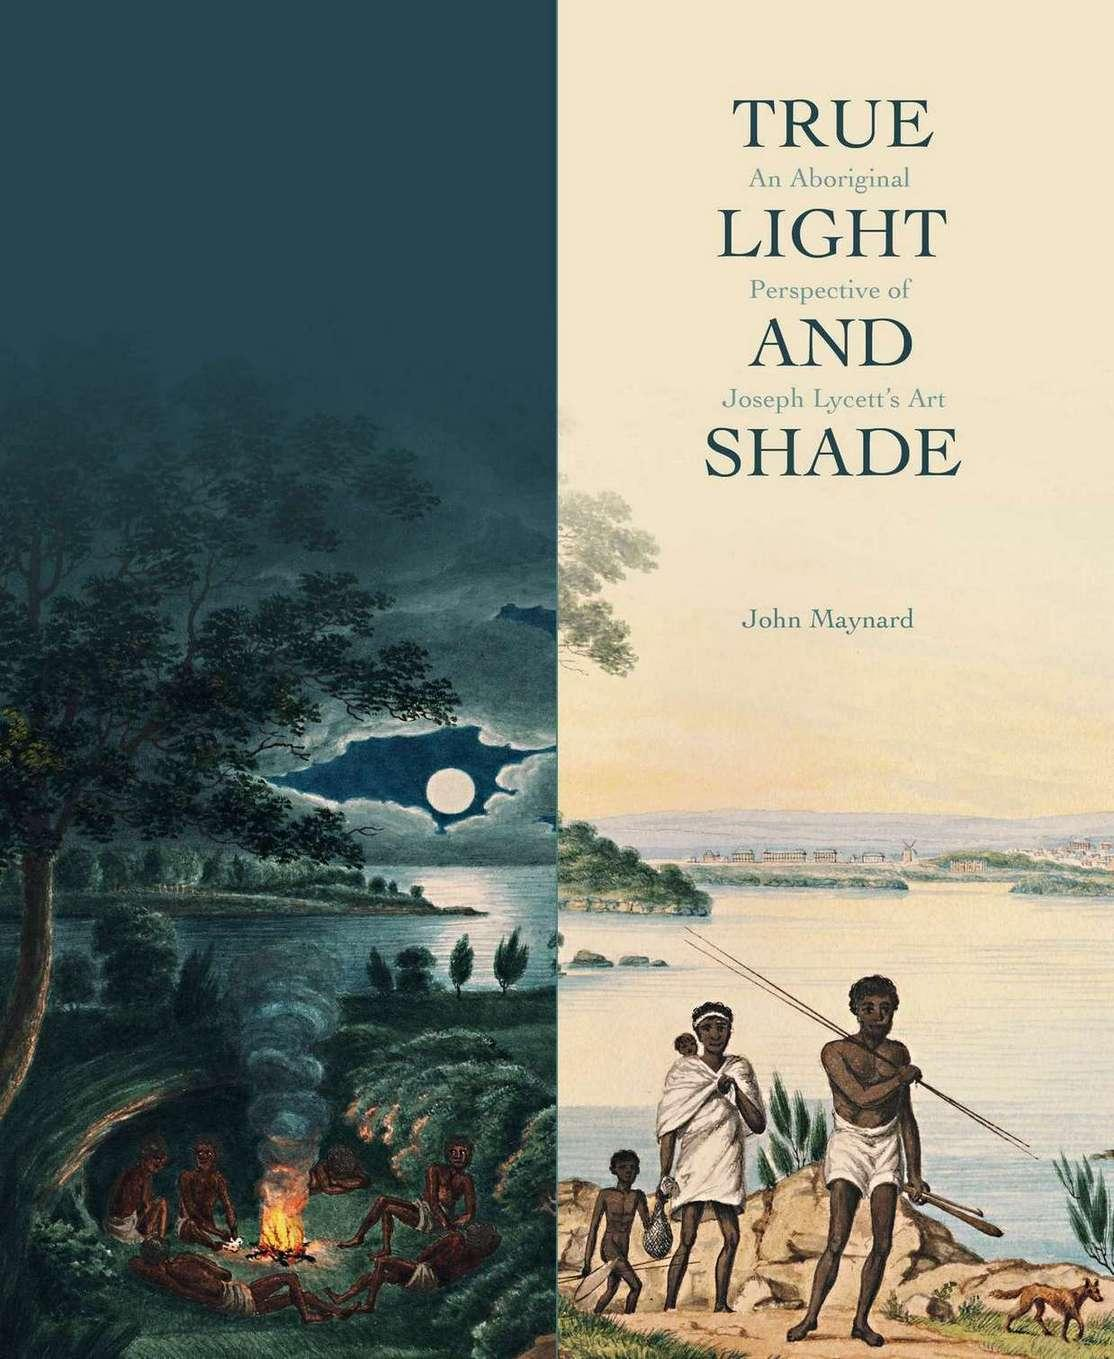 True Light and Shade: An Aboriginal Perspective of Joseph Lycett's Art